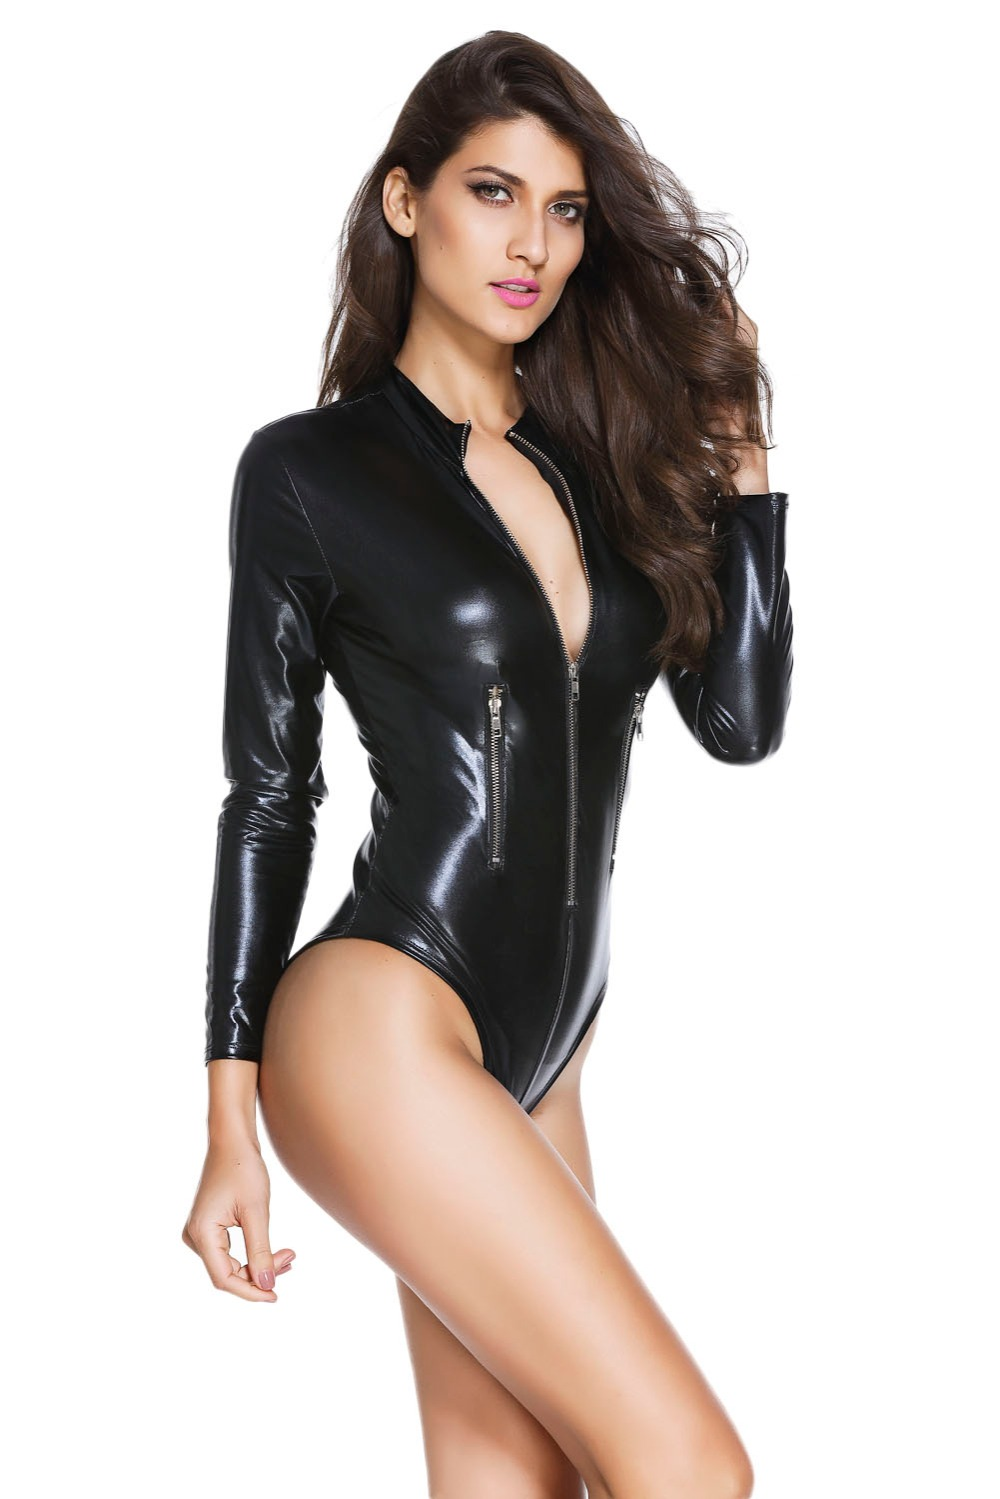 Sexy girls black leather body suits apologise, but